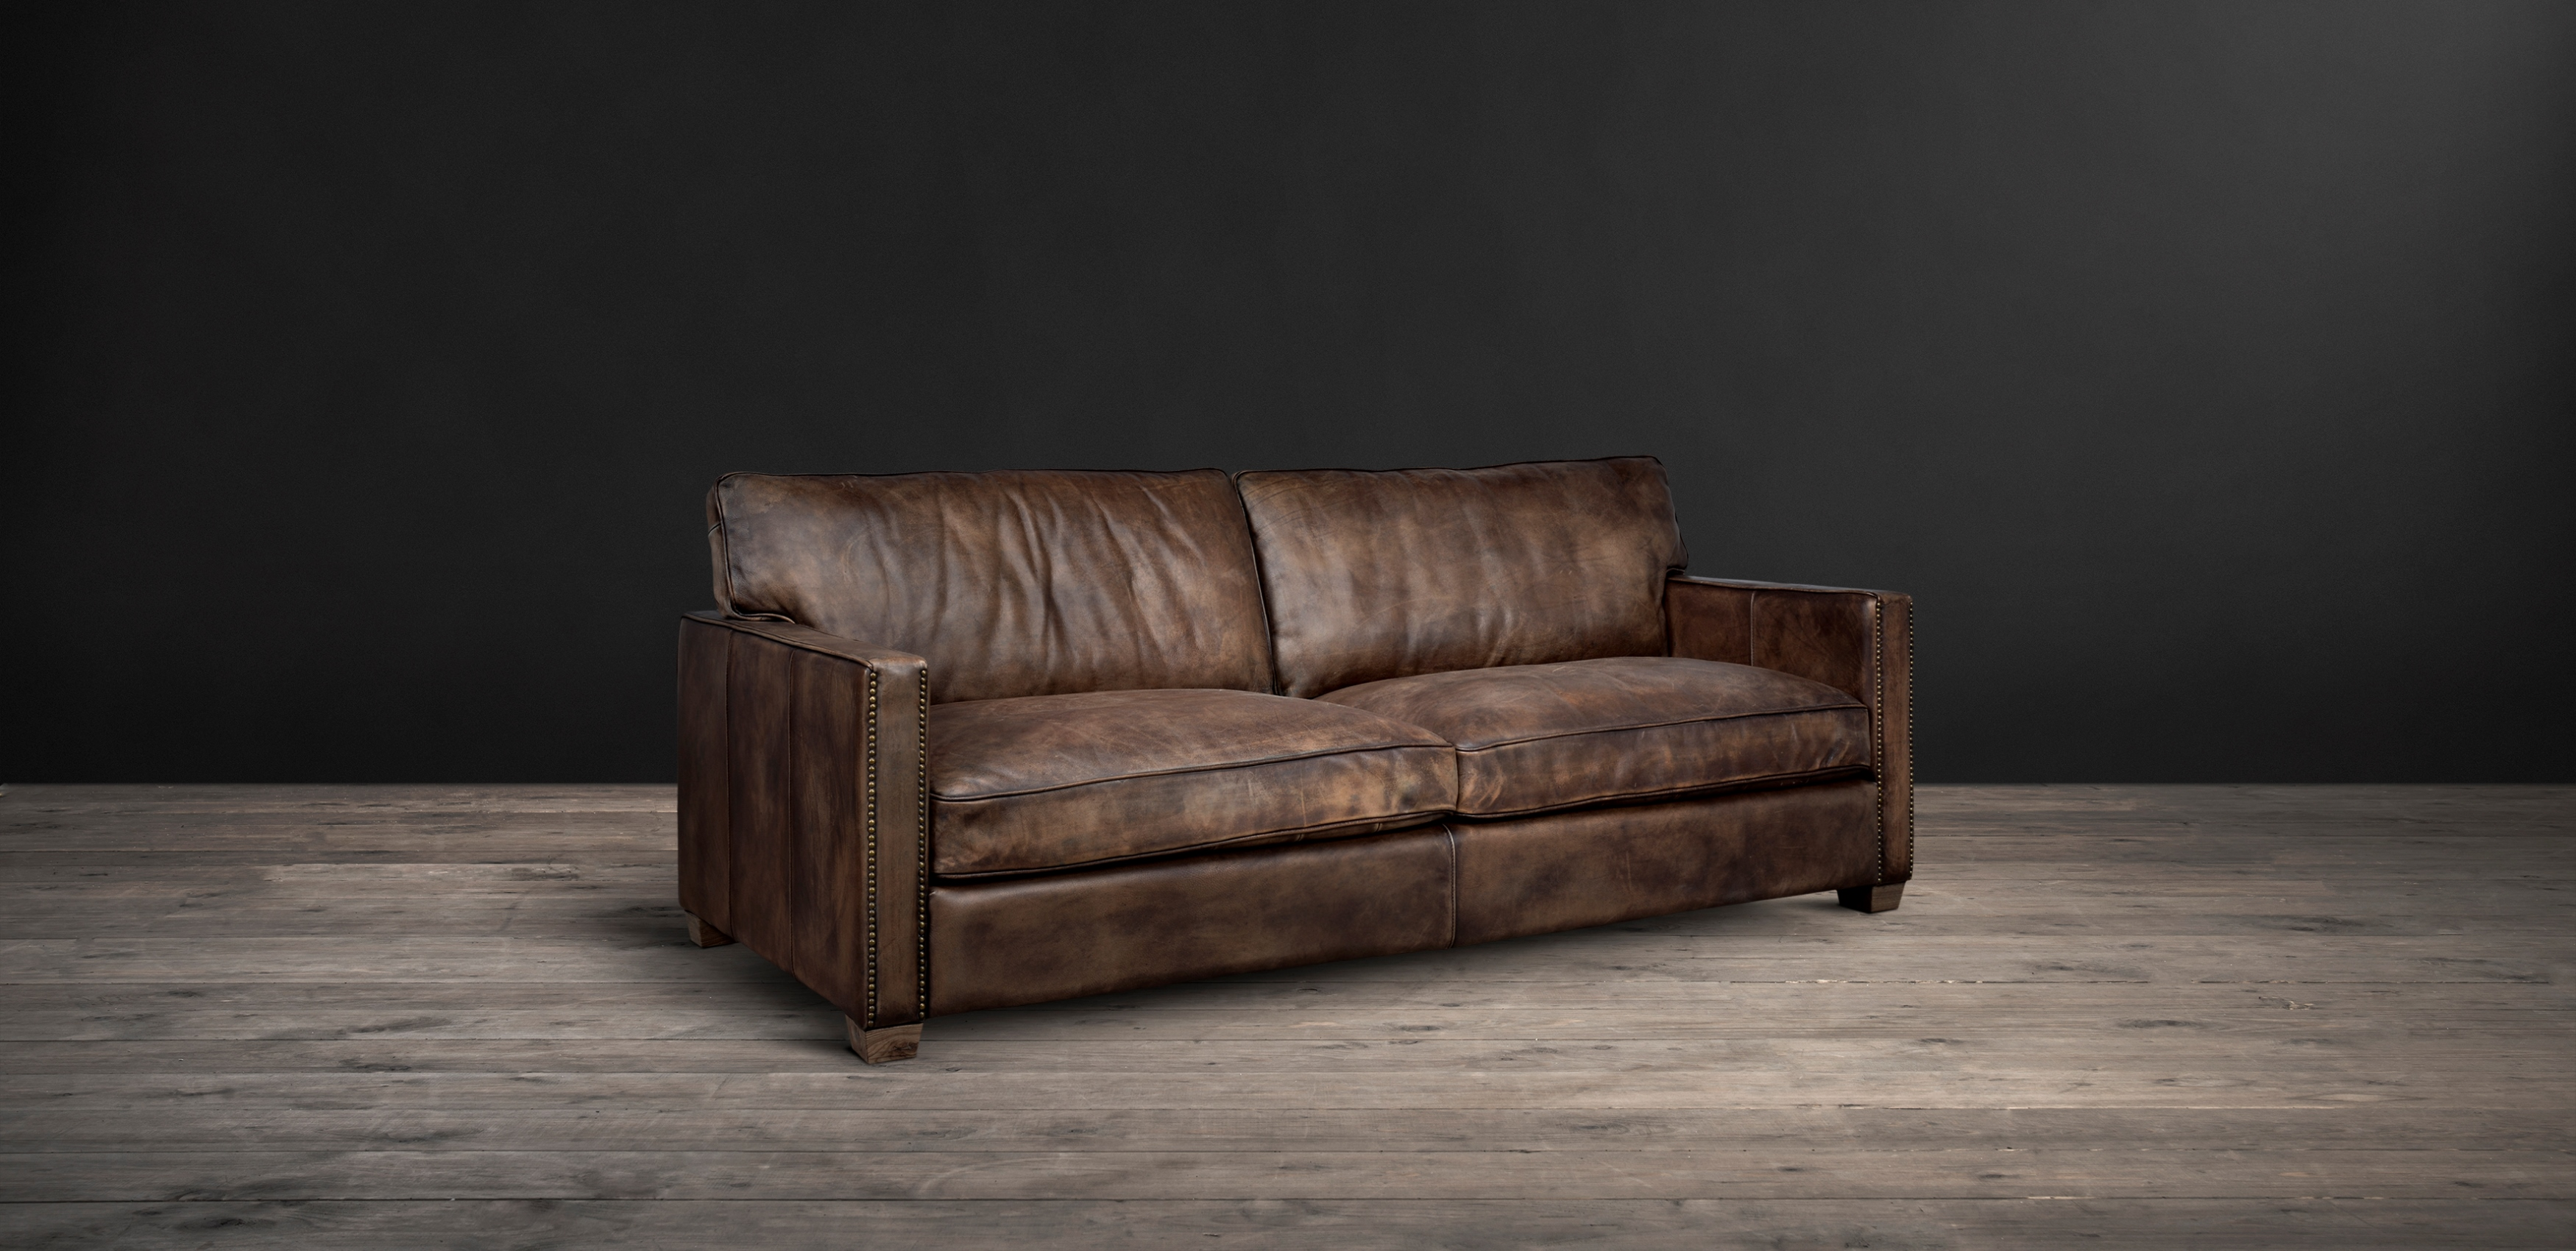 timothy oulton classic leather sofa - viscount william leather sofa from  side NNVVTBL